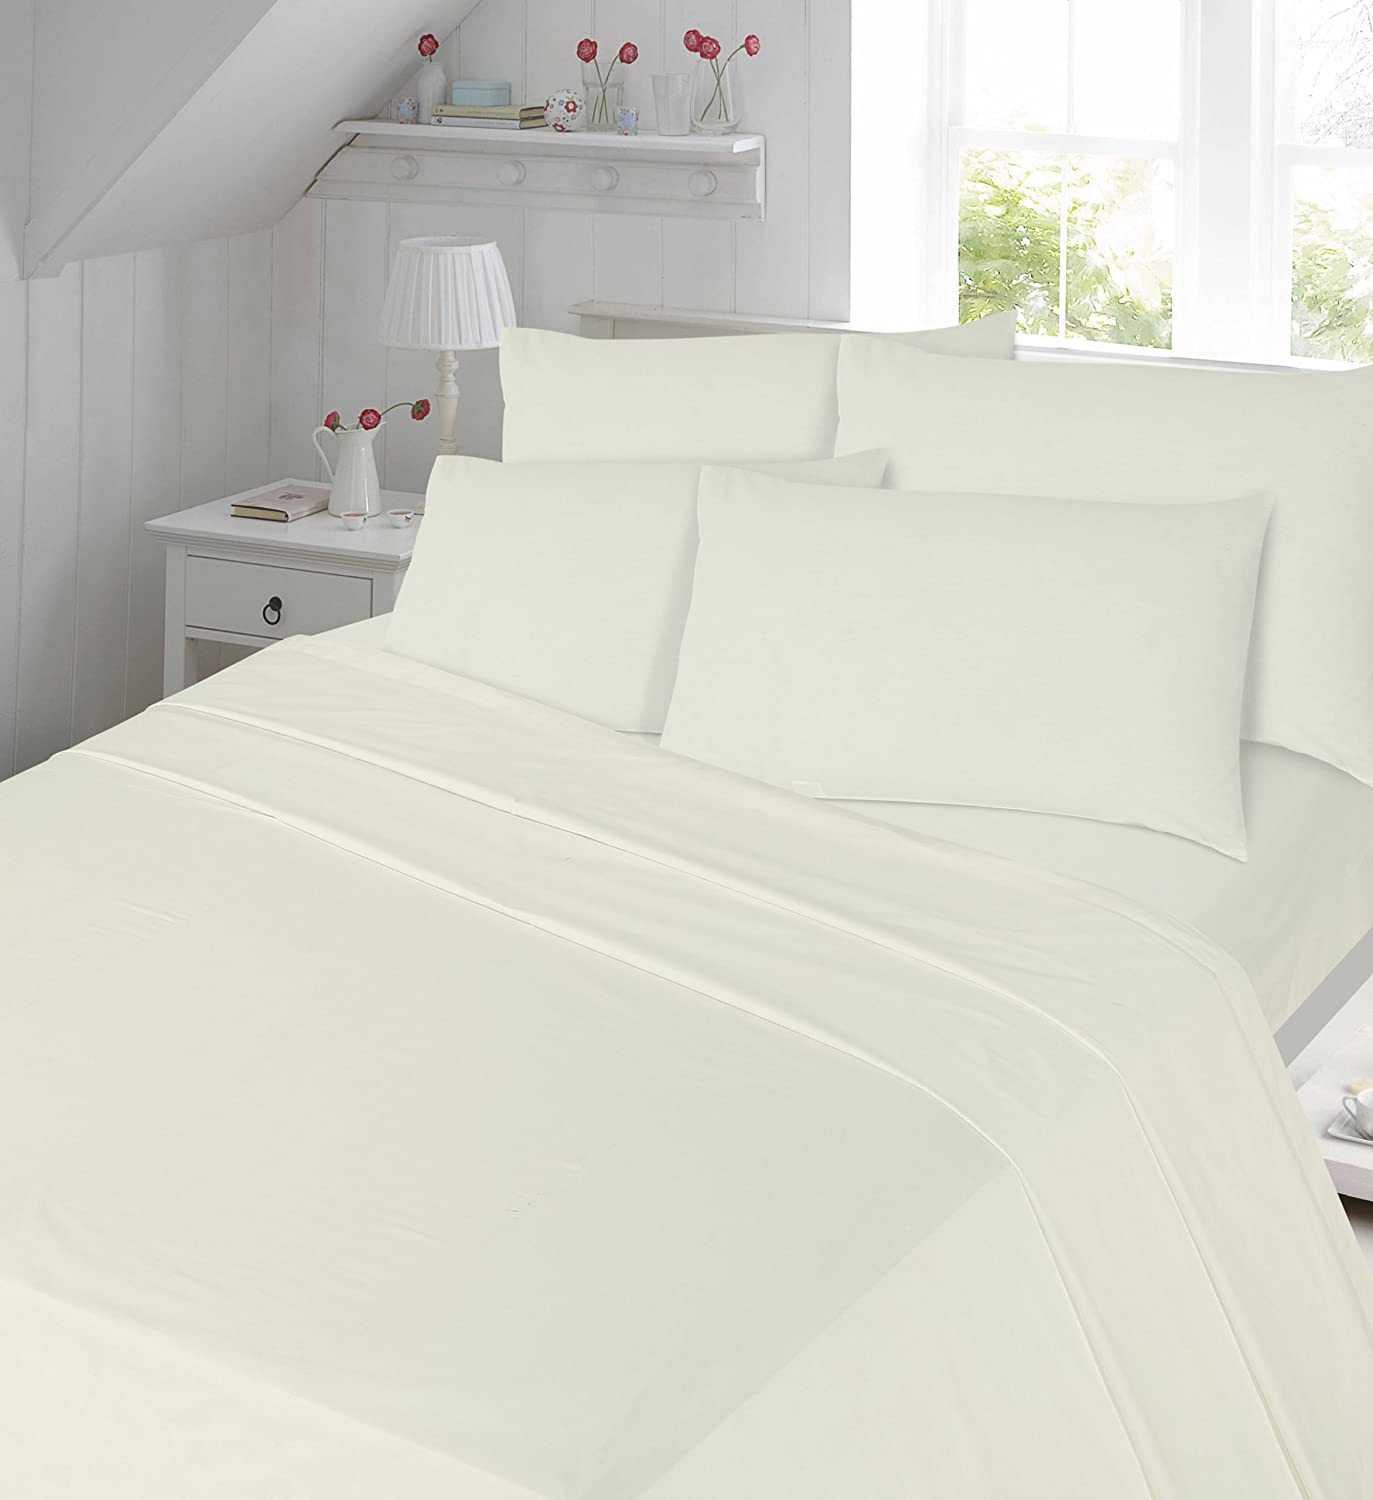 Thermal Flannelette Sheet Set Brushed Cotton Fitted /& Flat Bed Sheet Pillow Case